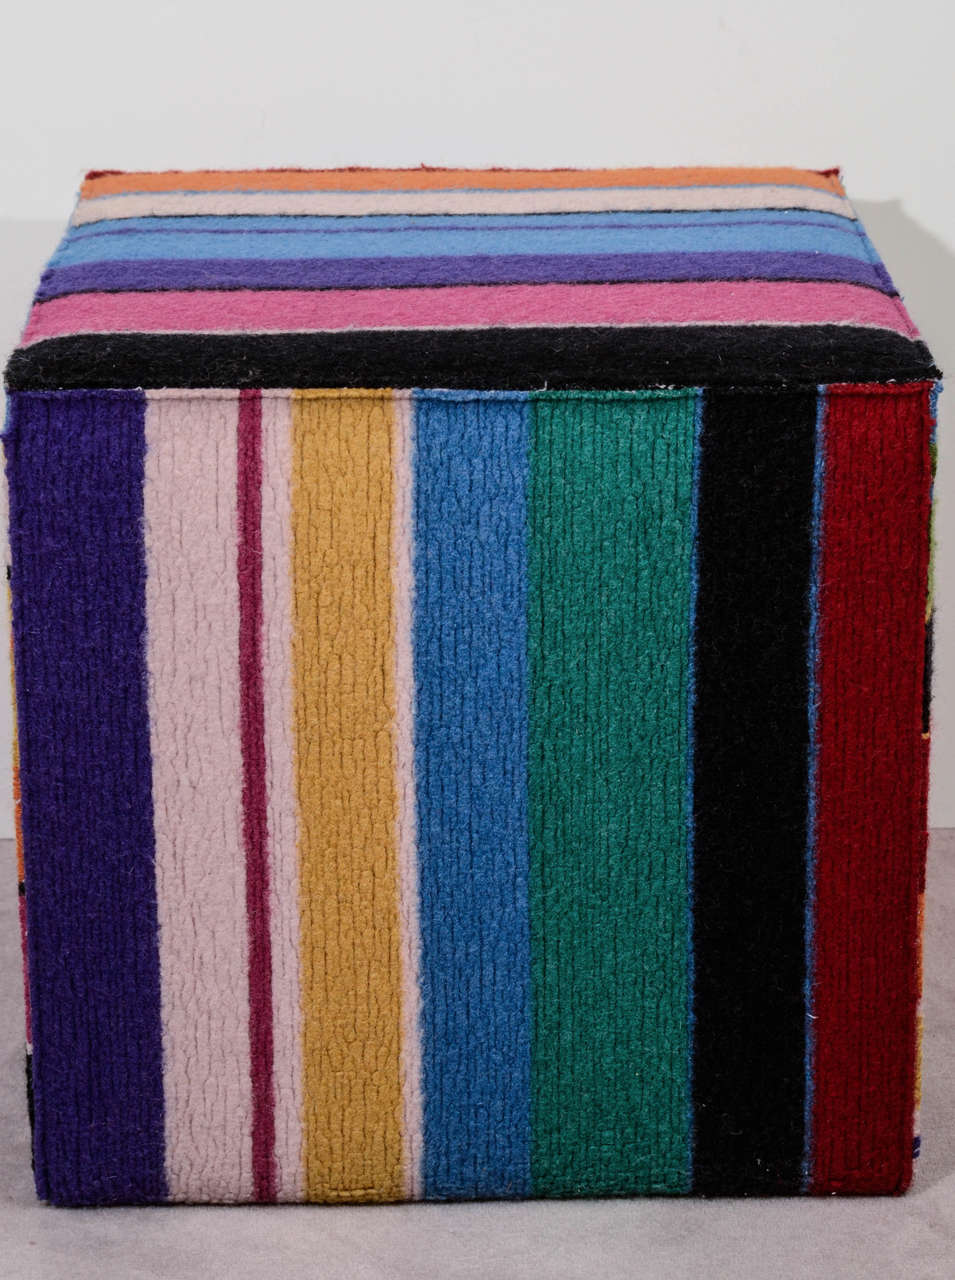 Vintage Multi Colored Cube Shaped Pouf By Missoni At 1stdibs